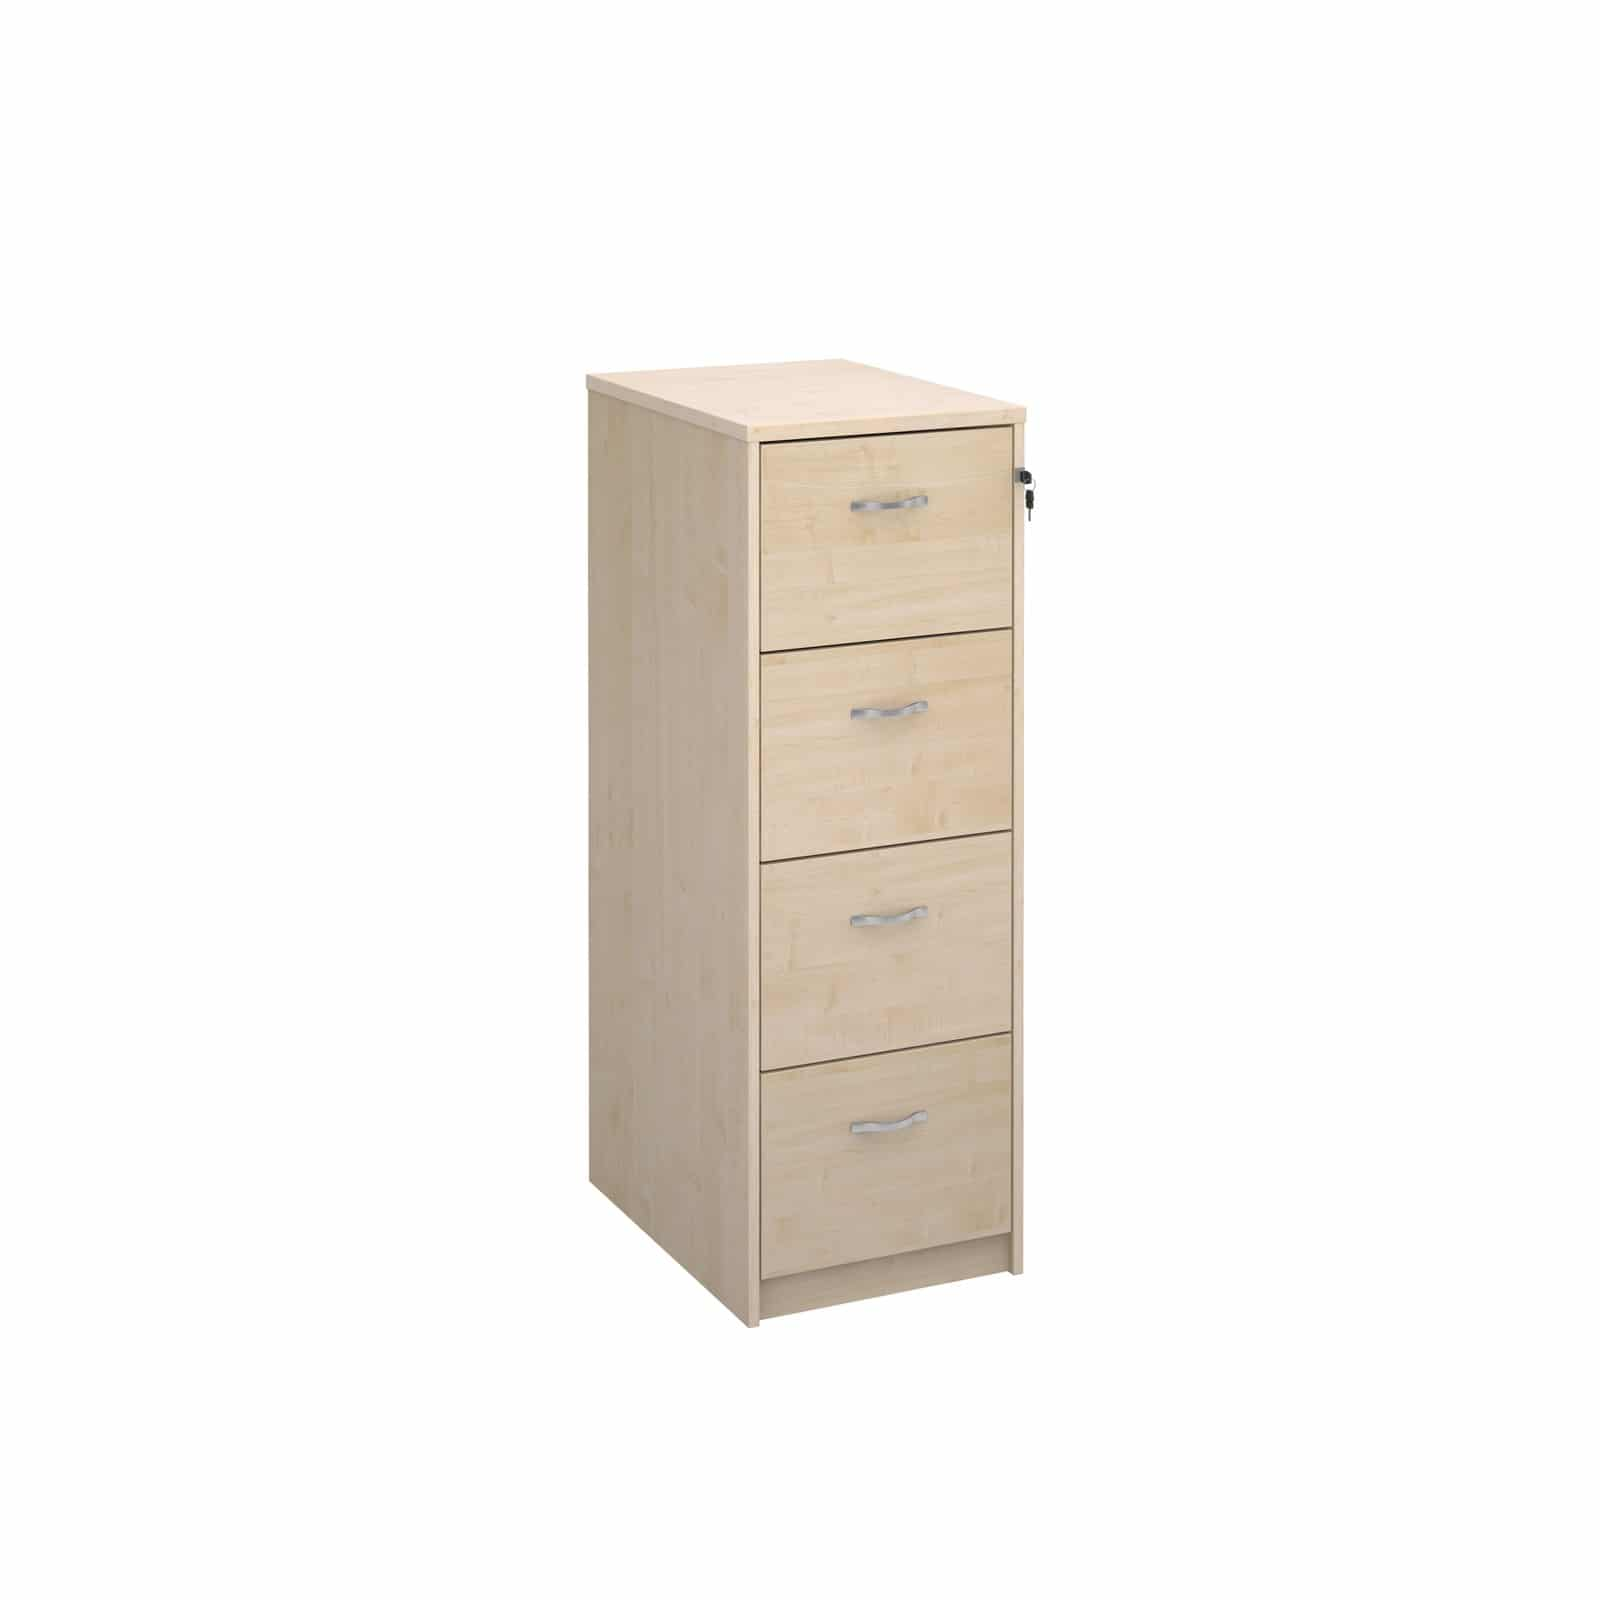 Bimi ready built 4 draw lockable wood filing cabinet in for Ready built cupboards